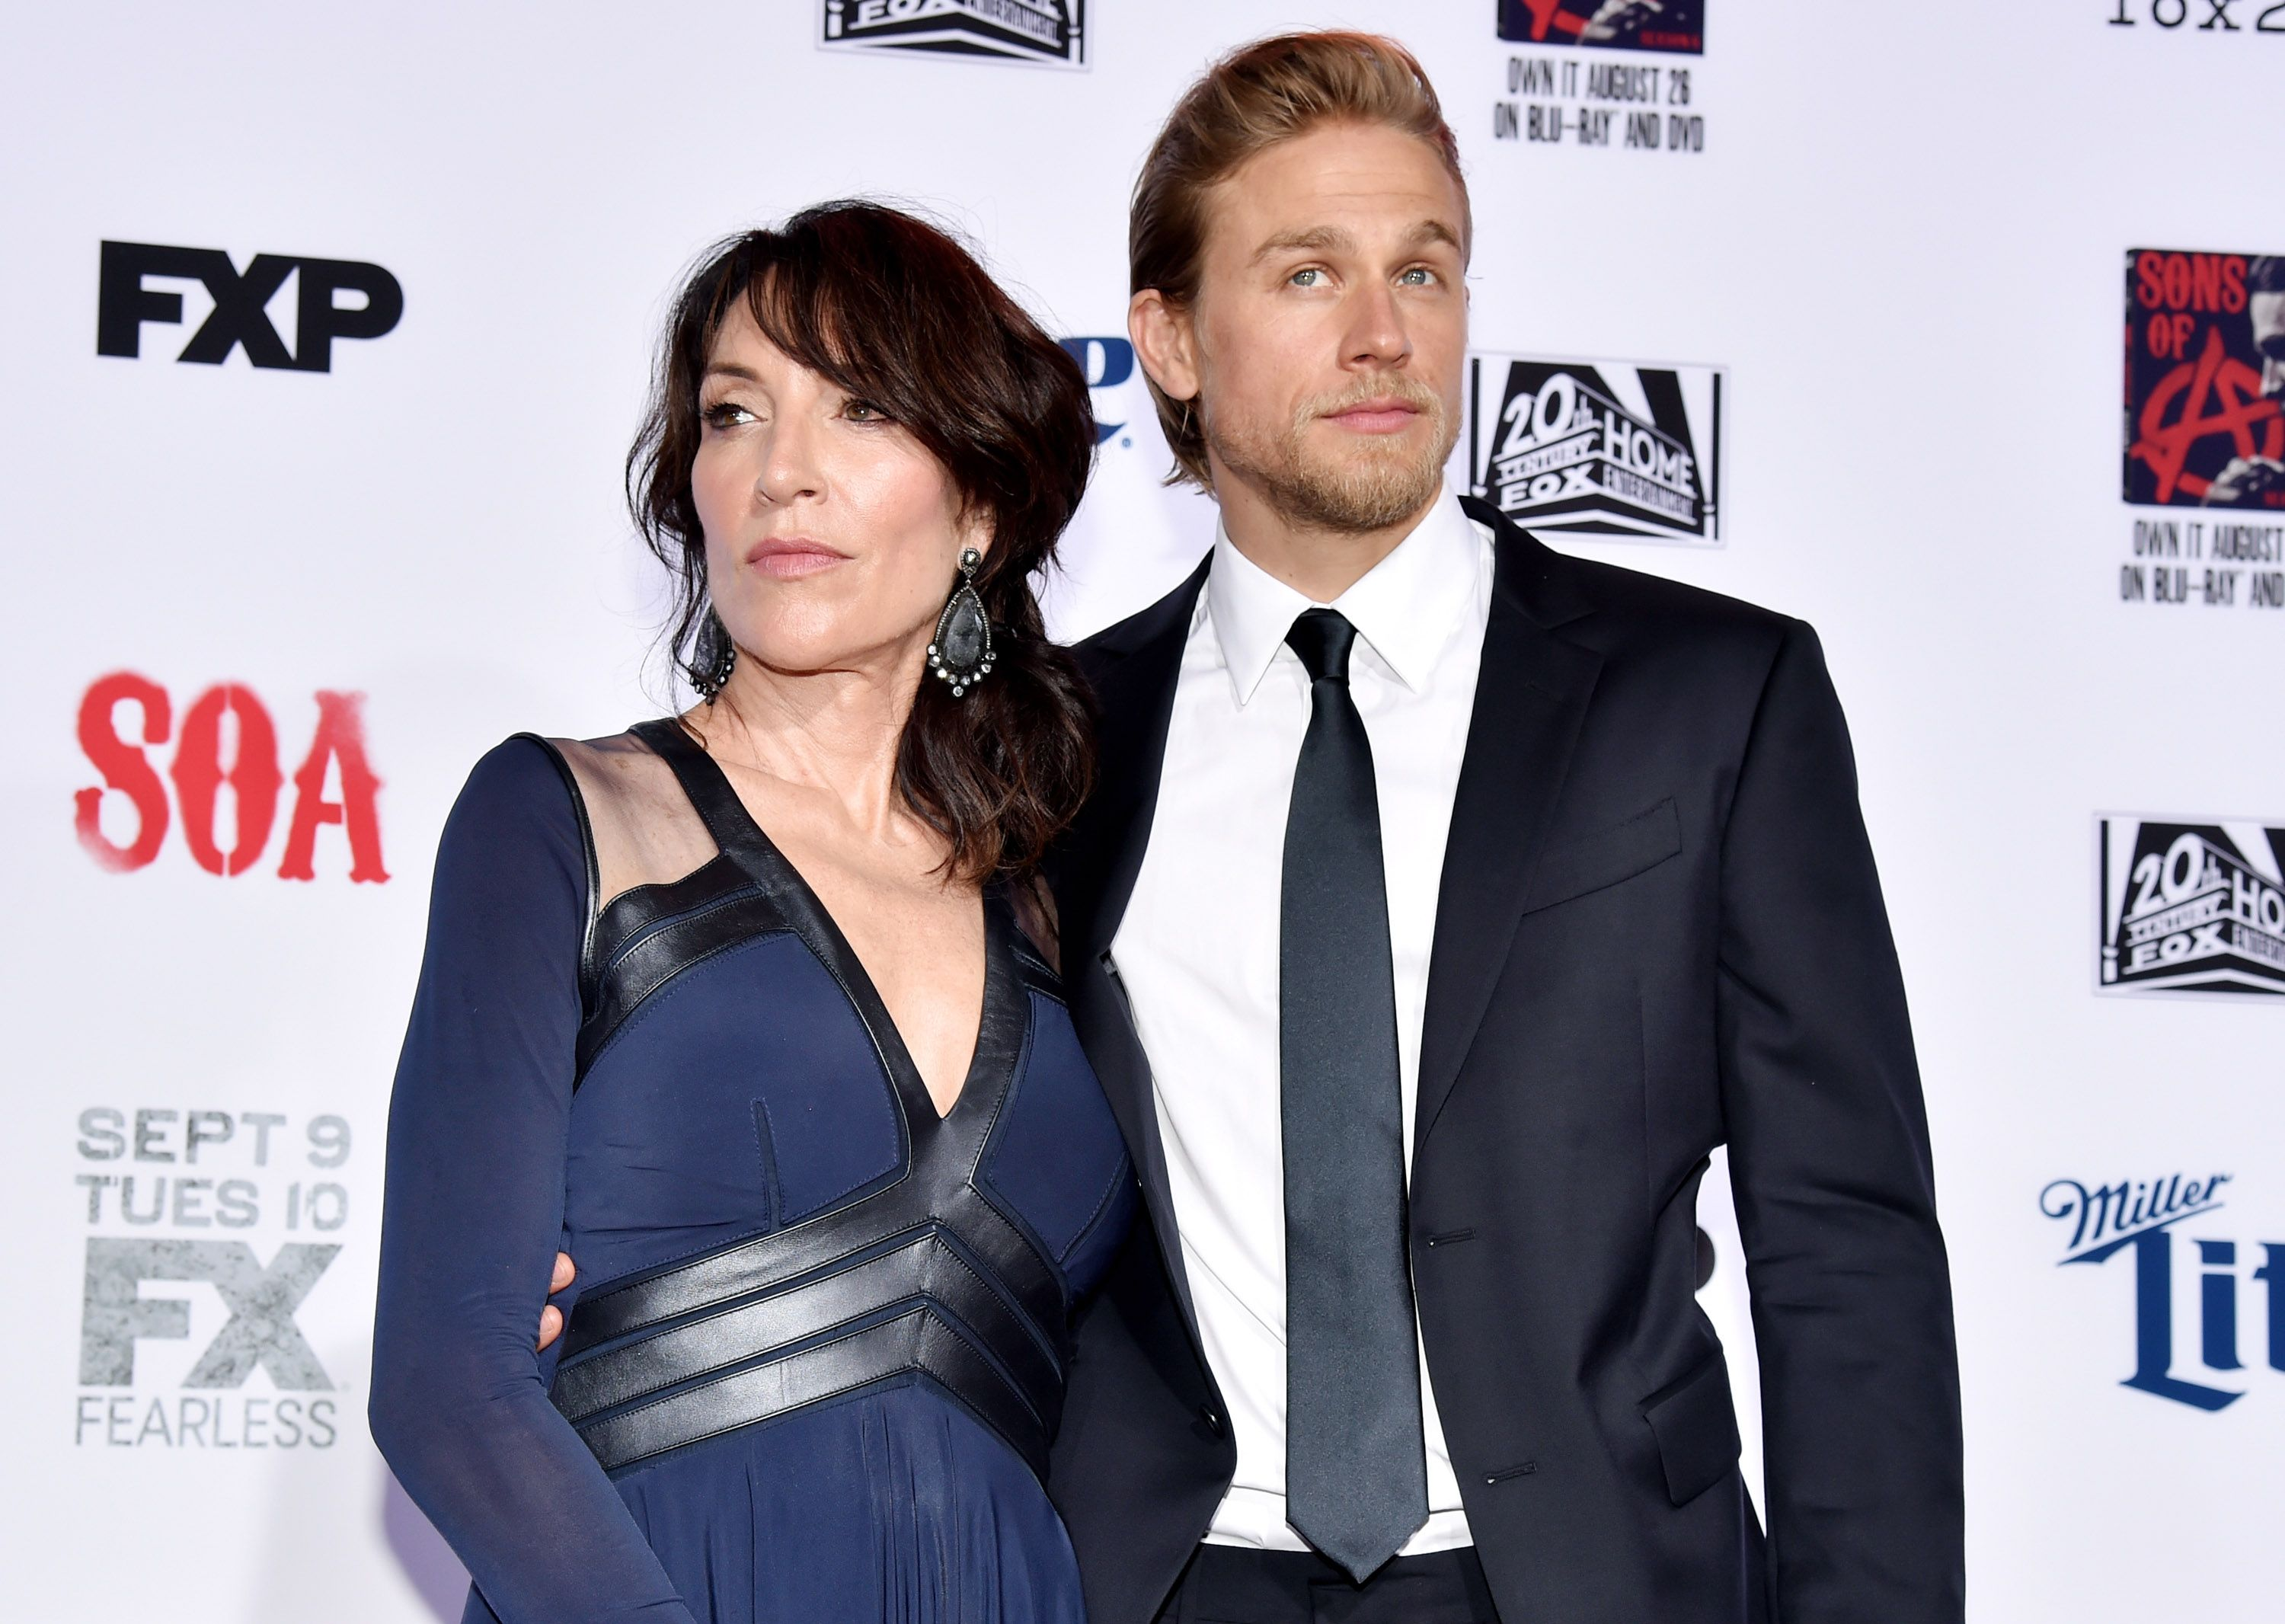 Katey Sagel and Charlie Hunnam